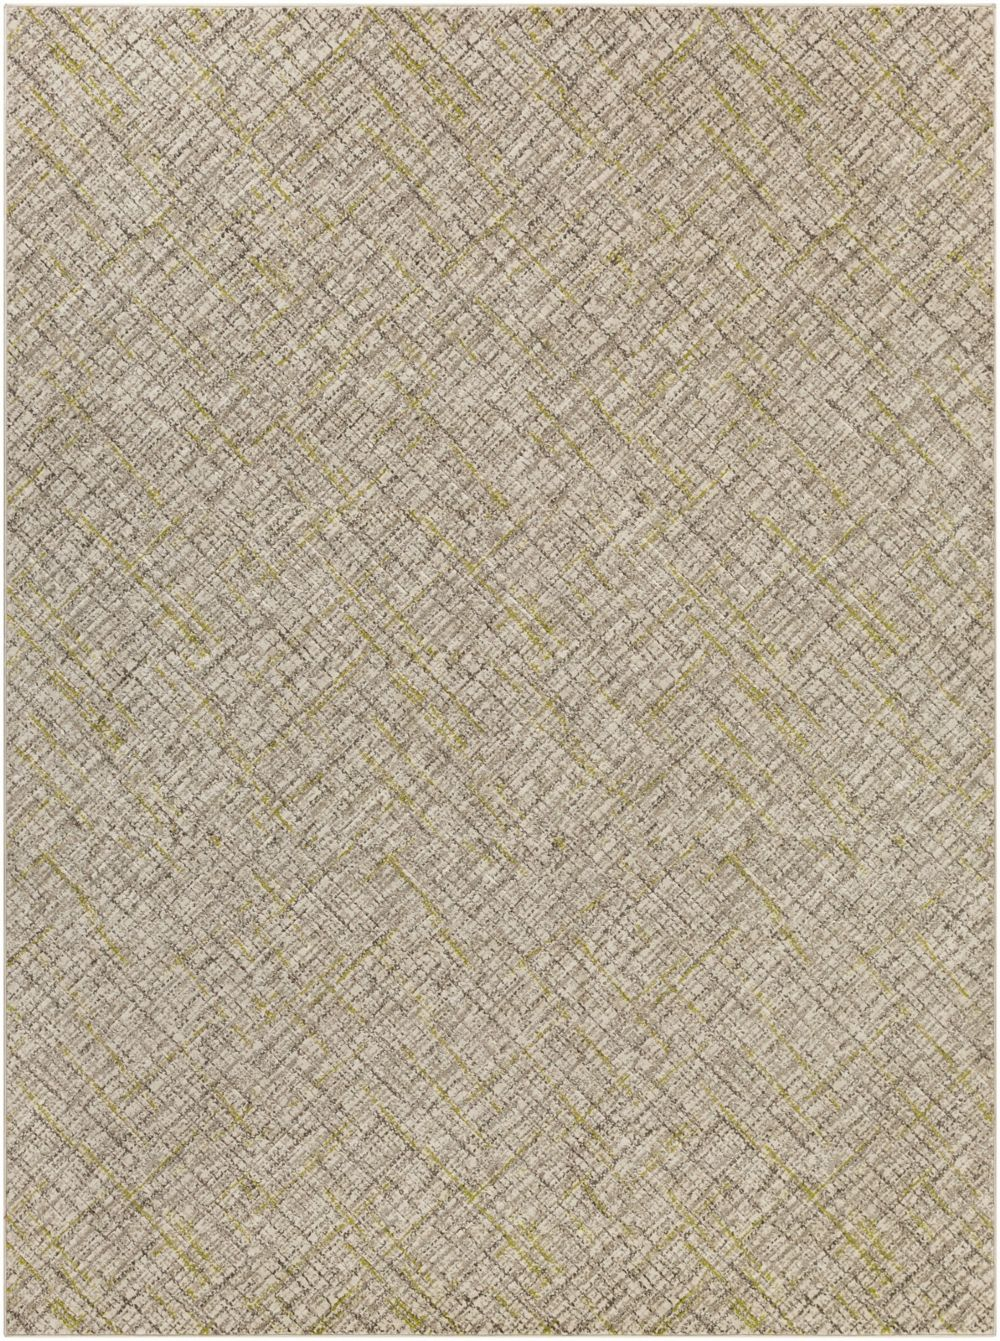 surya jax contemporary area rug collection